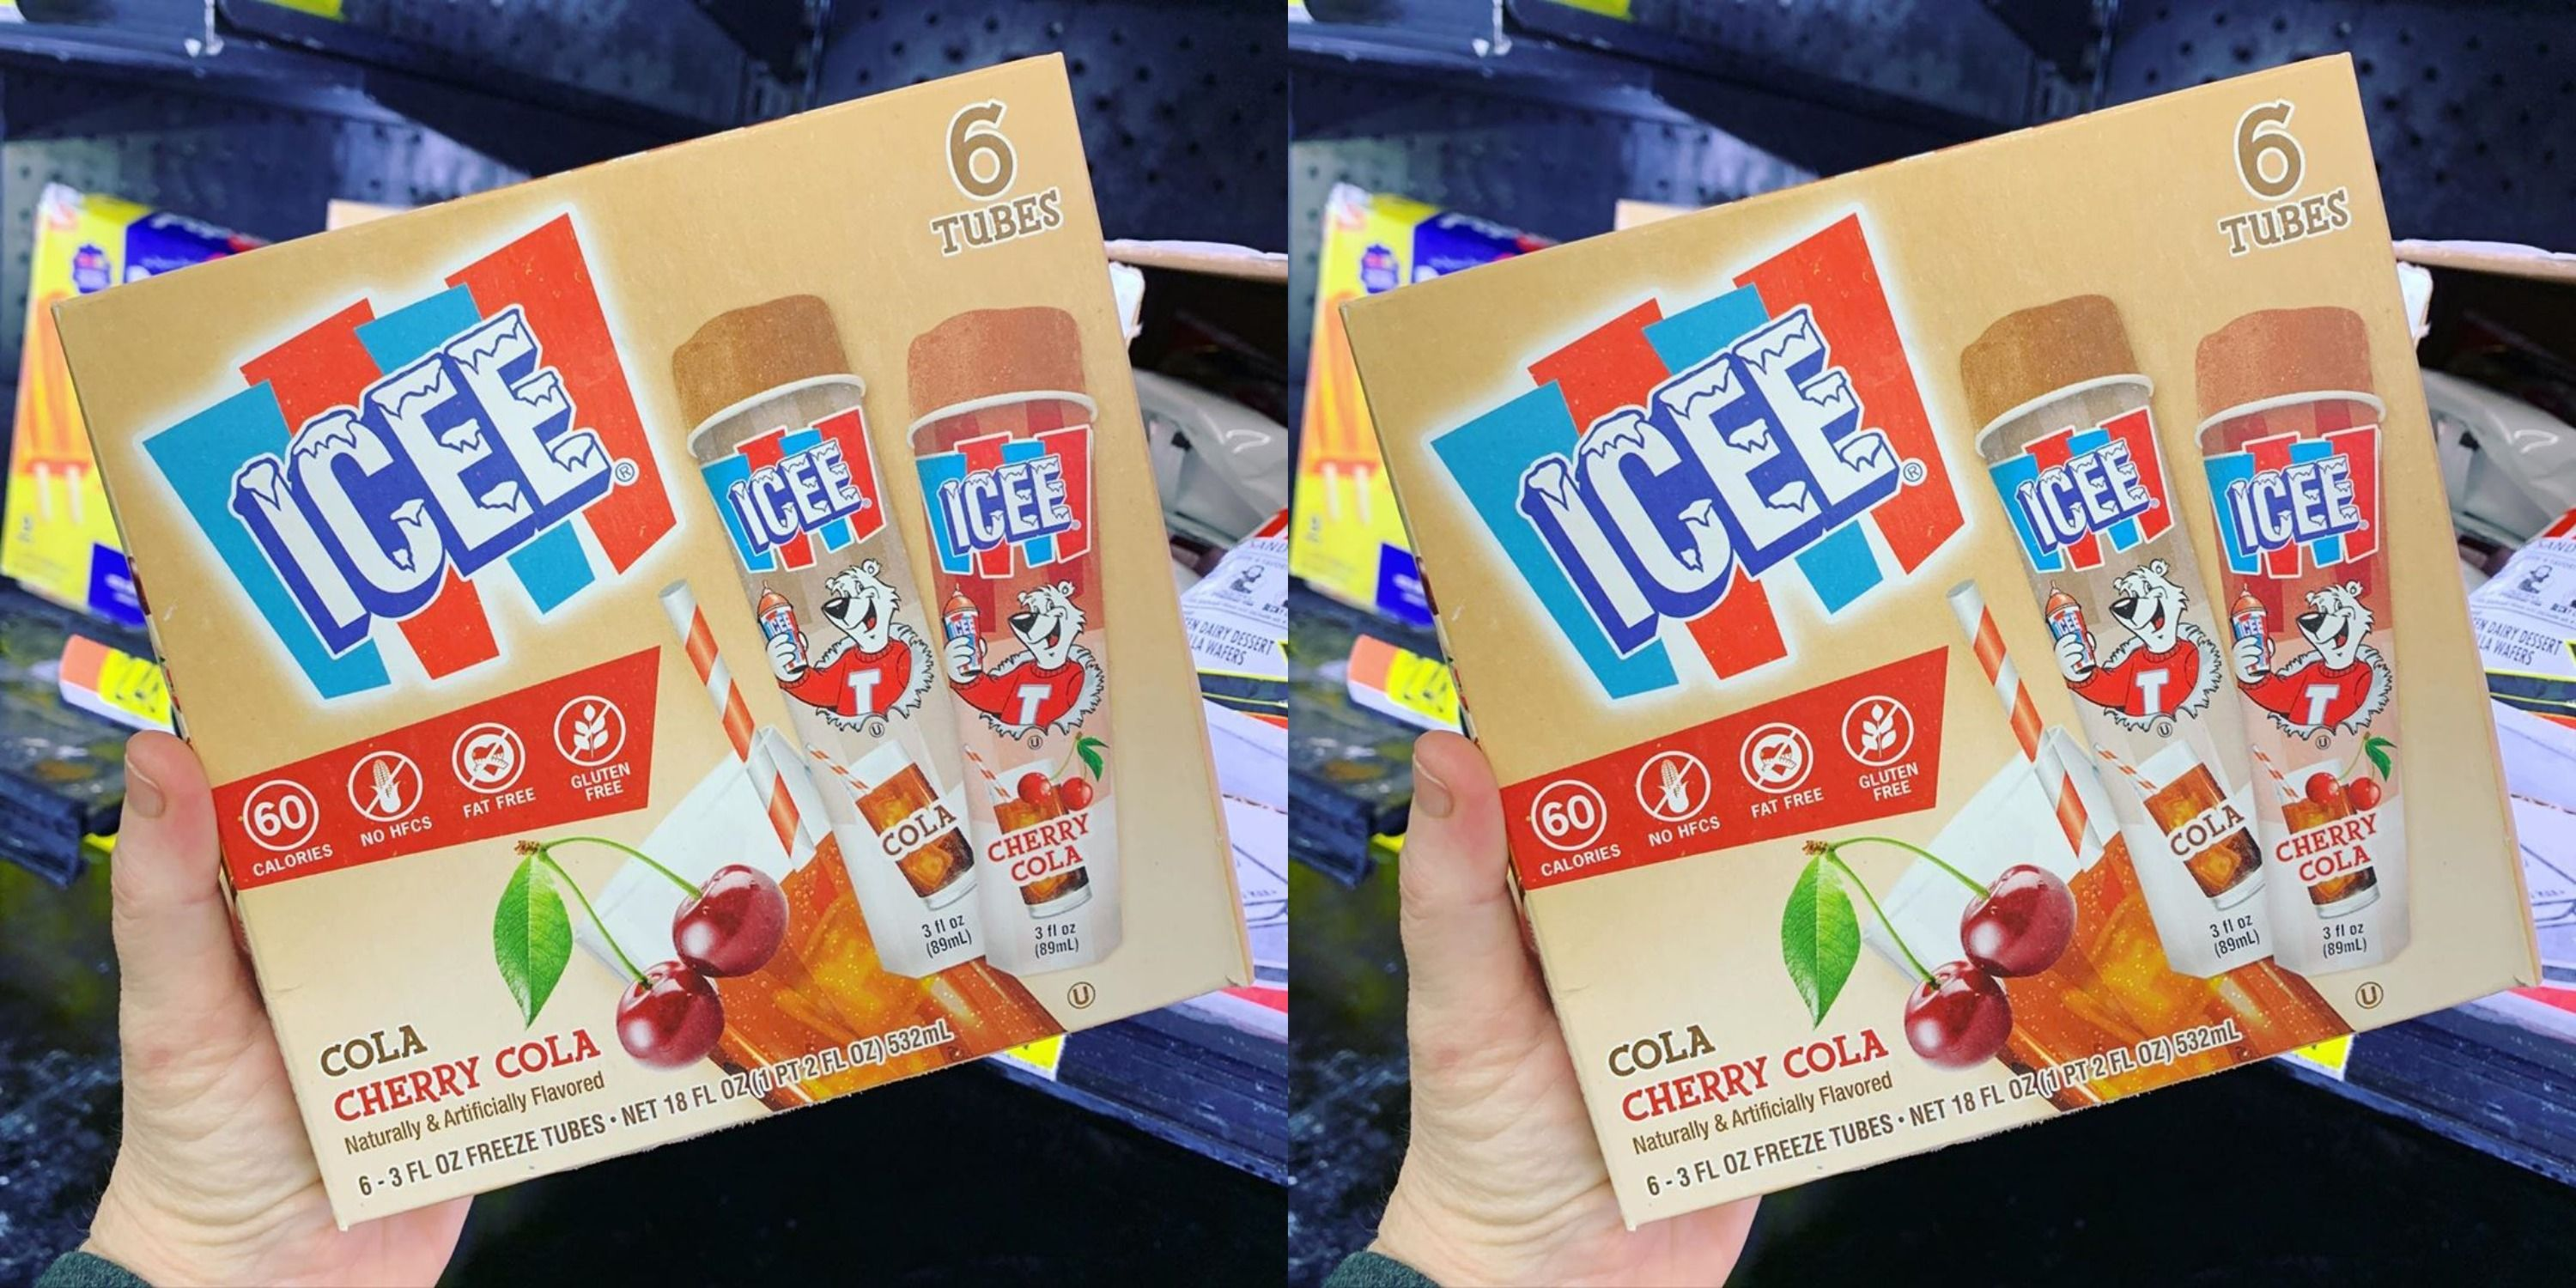 Icee Pops Come In A Cherry Cola Flavor Now